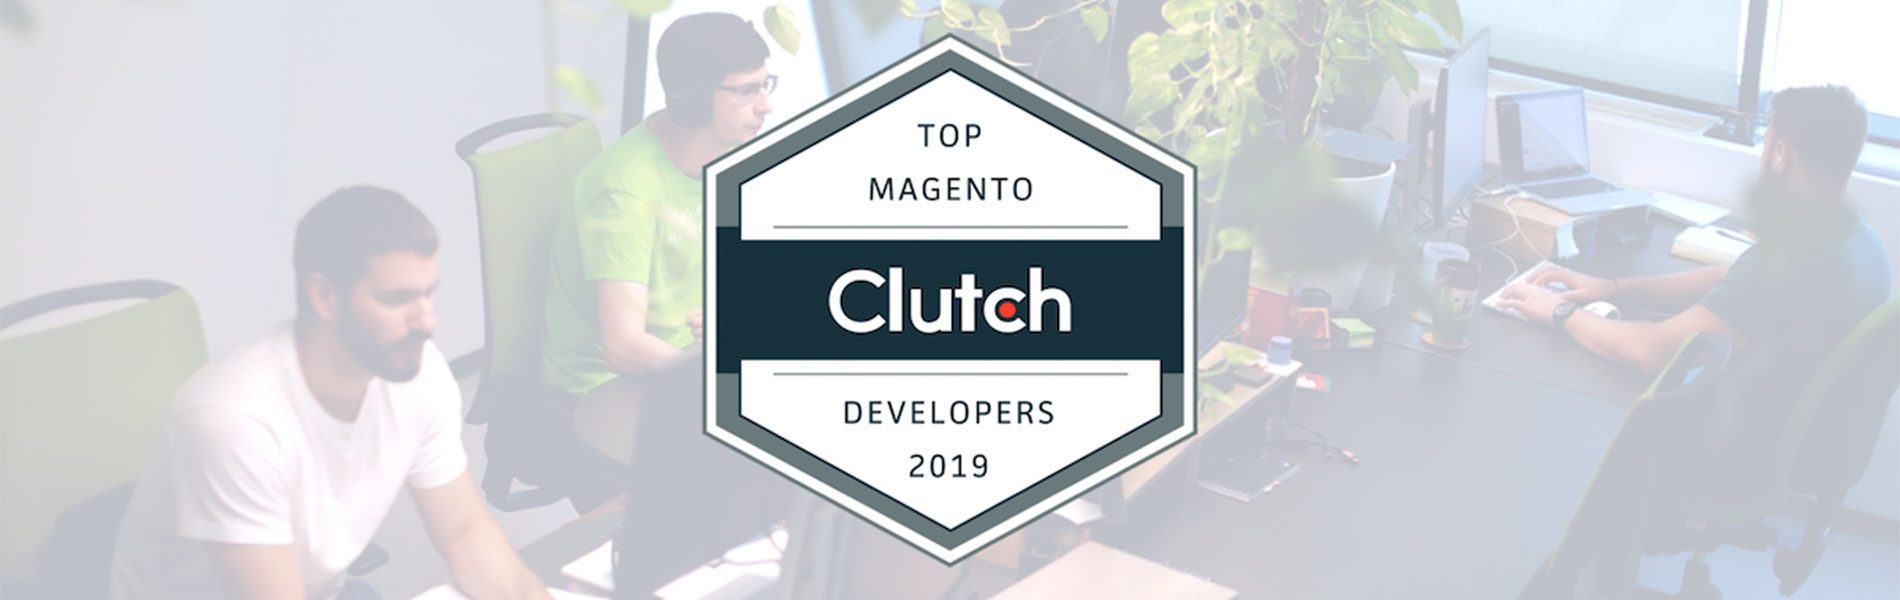 Elogic Named a Top 2019 Magento Developer by Clutch